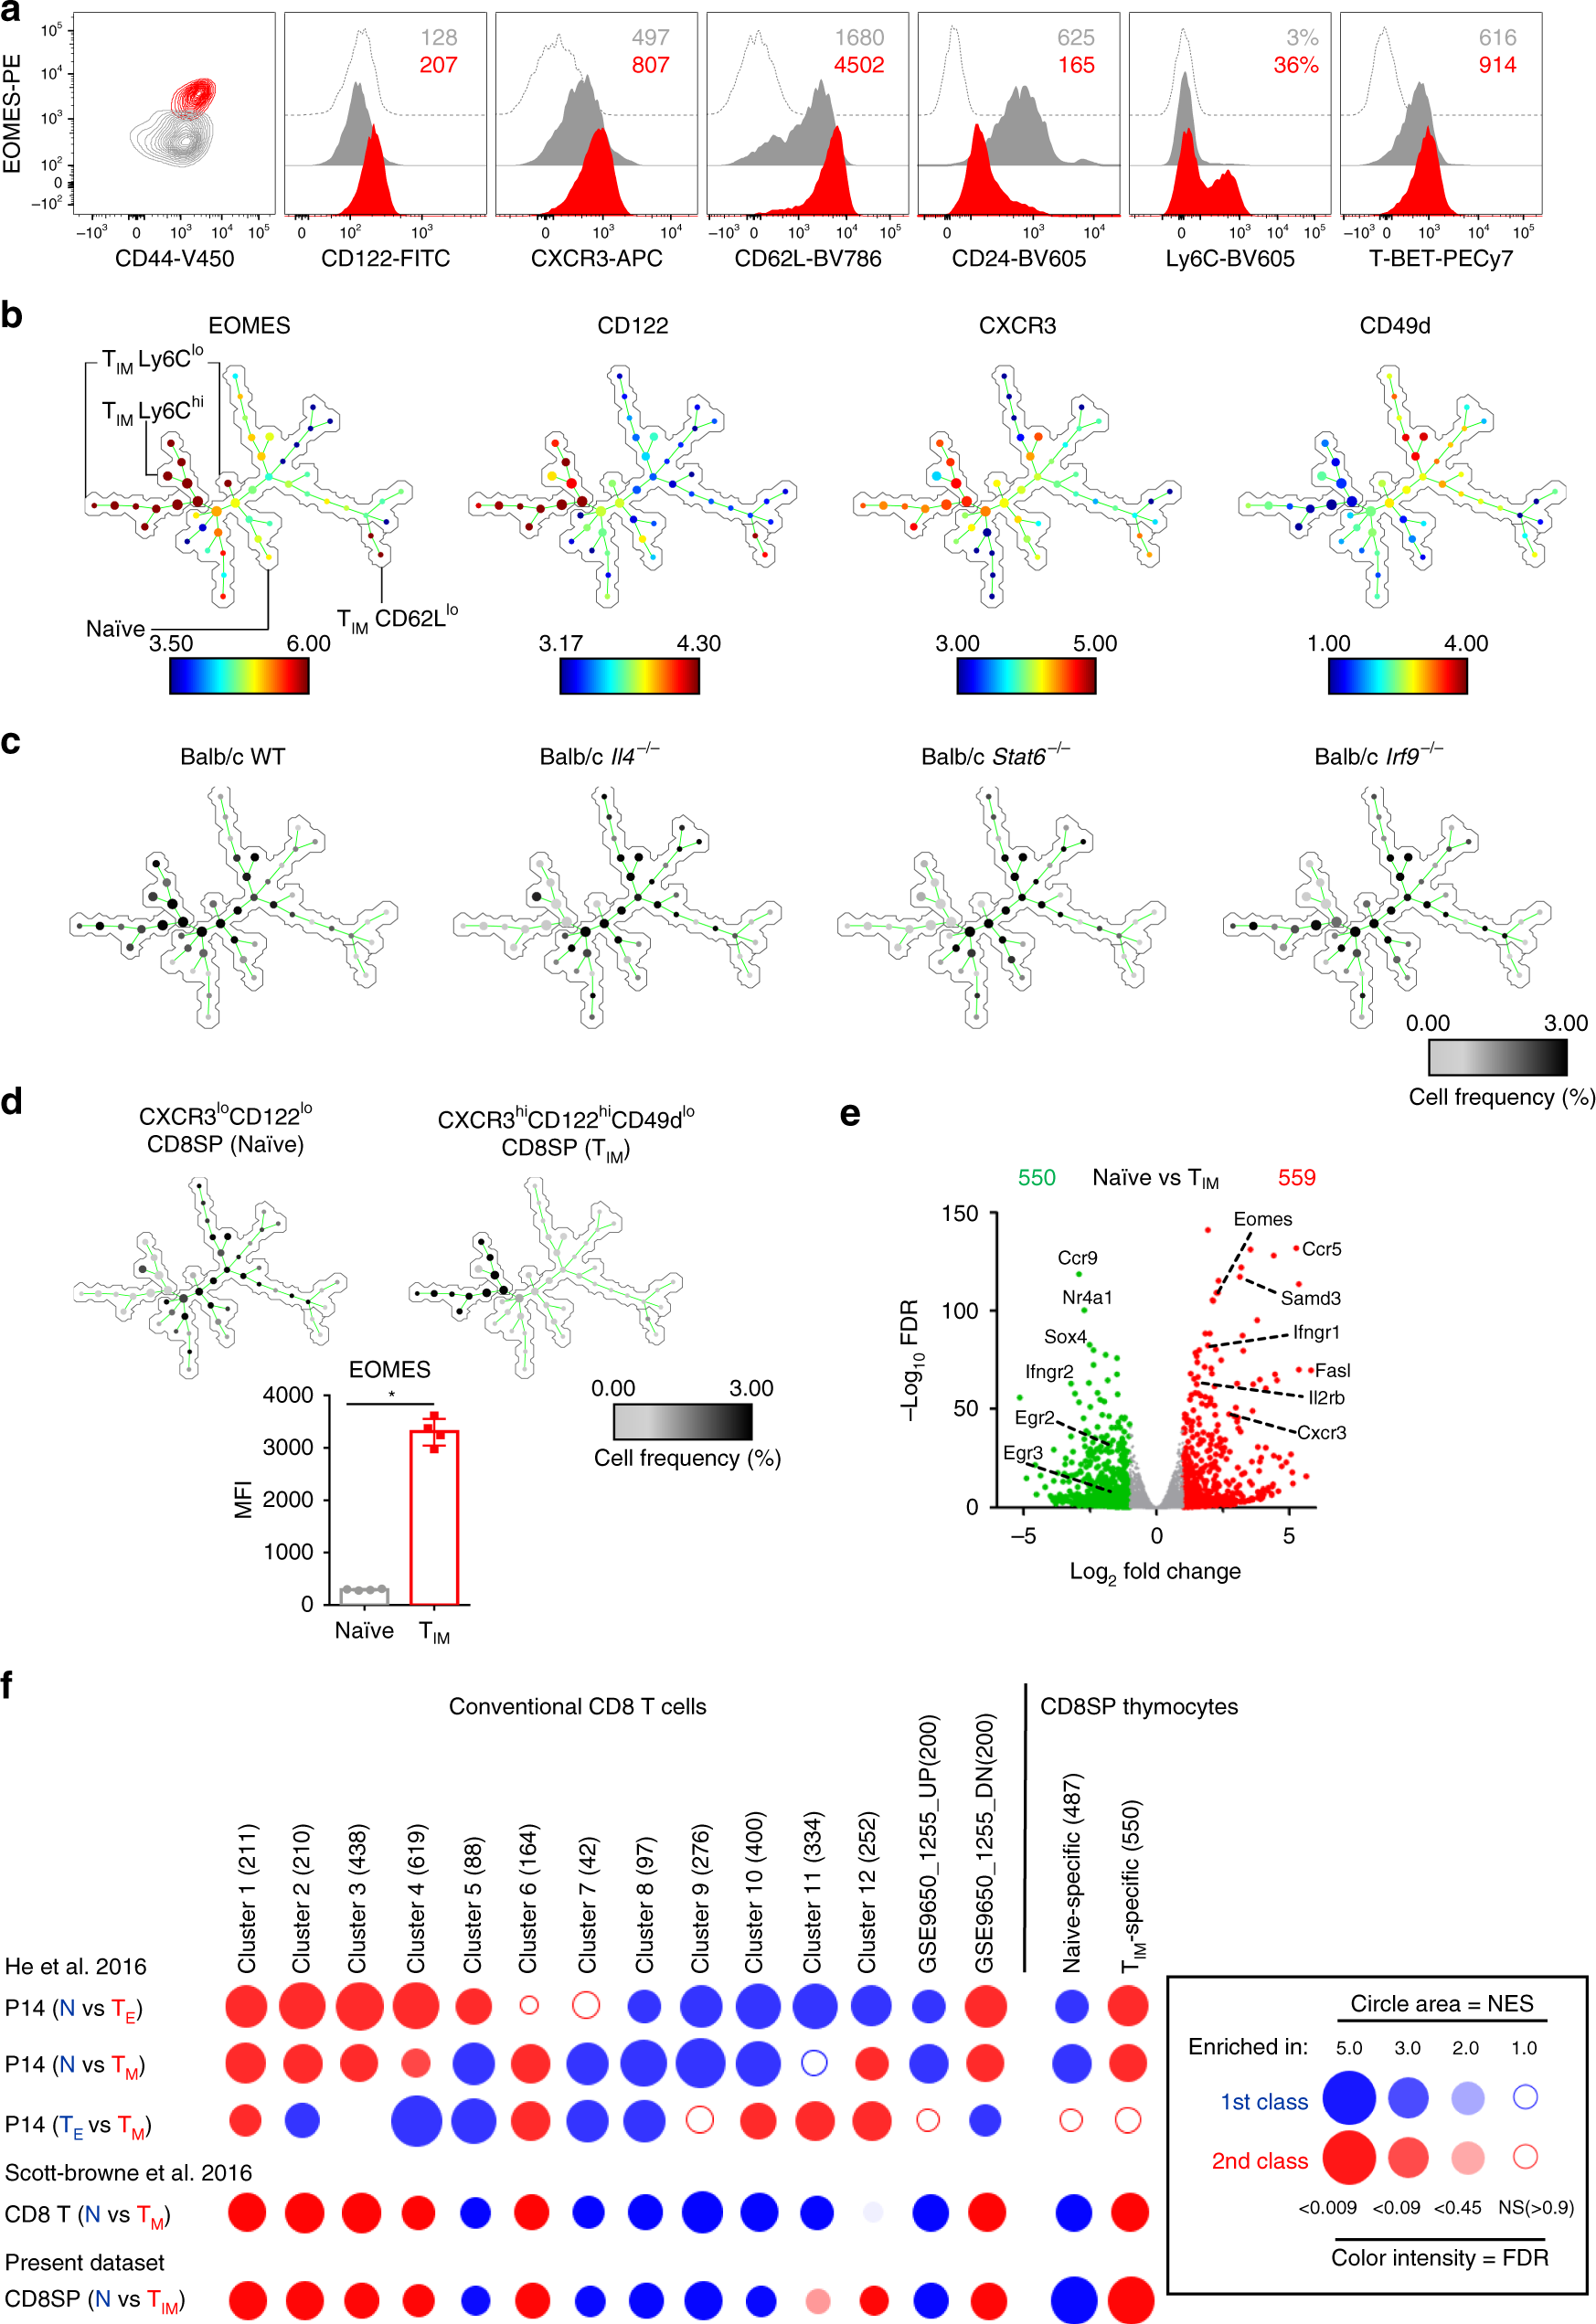 EOMES interacts with RUNX3 and BRG1 to promote innate memory